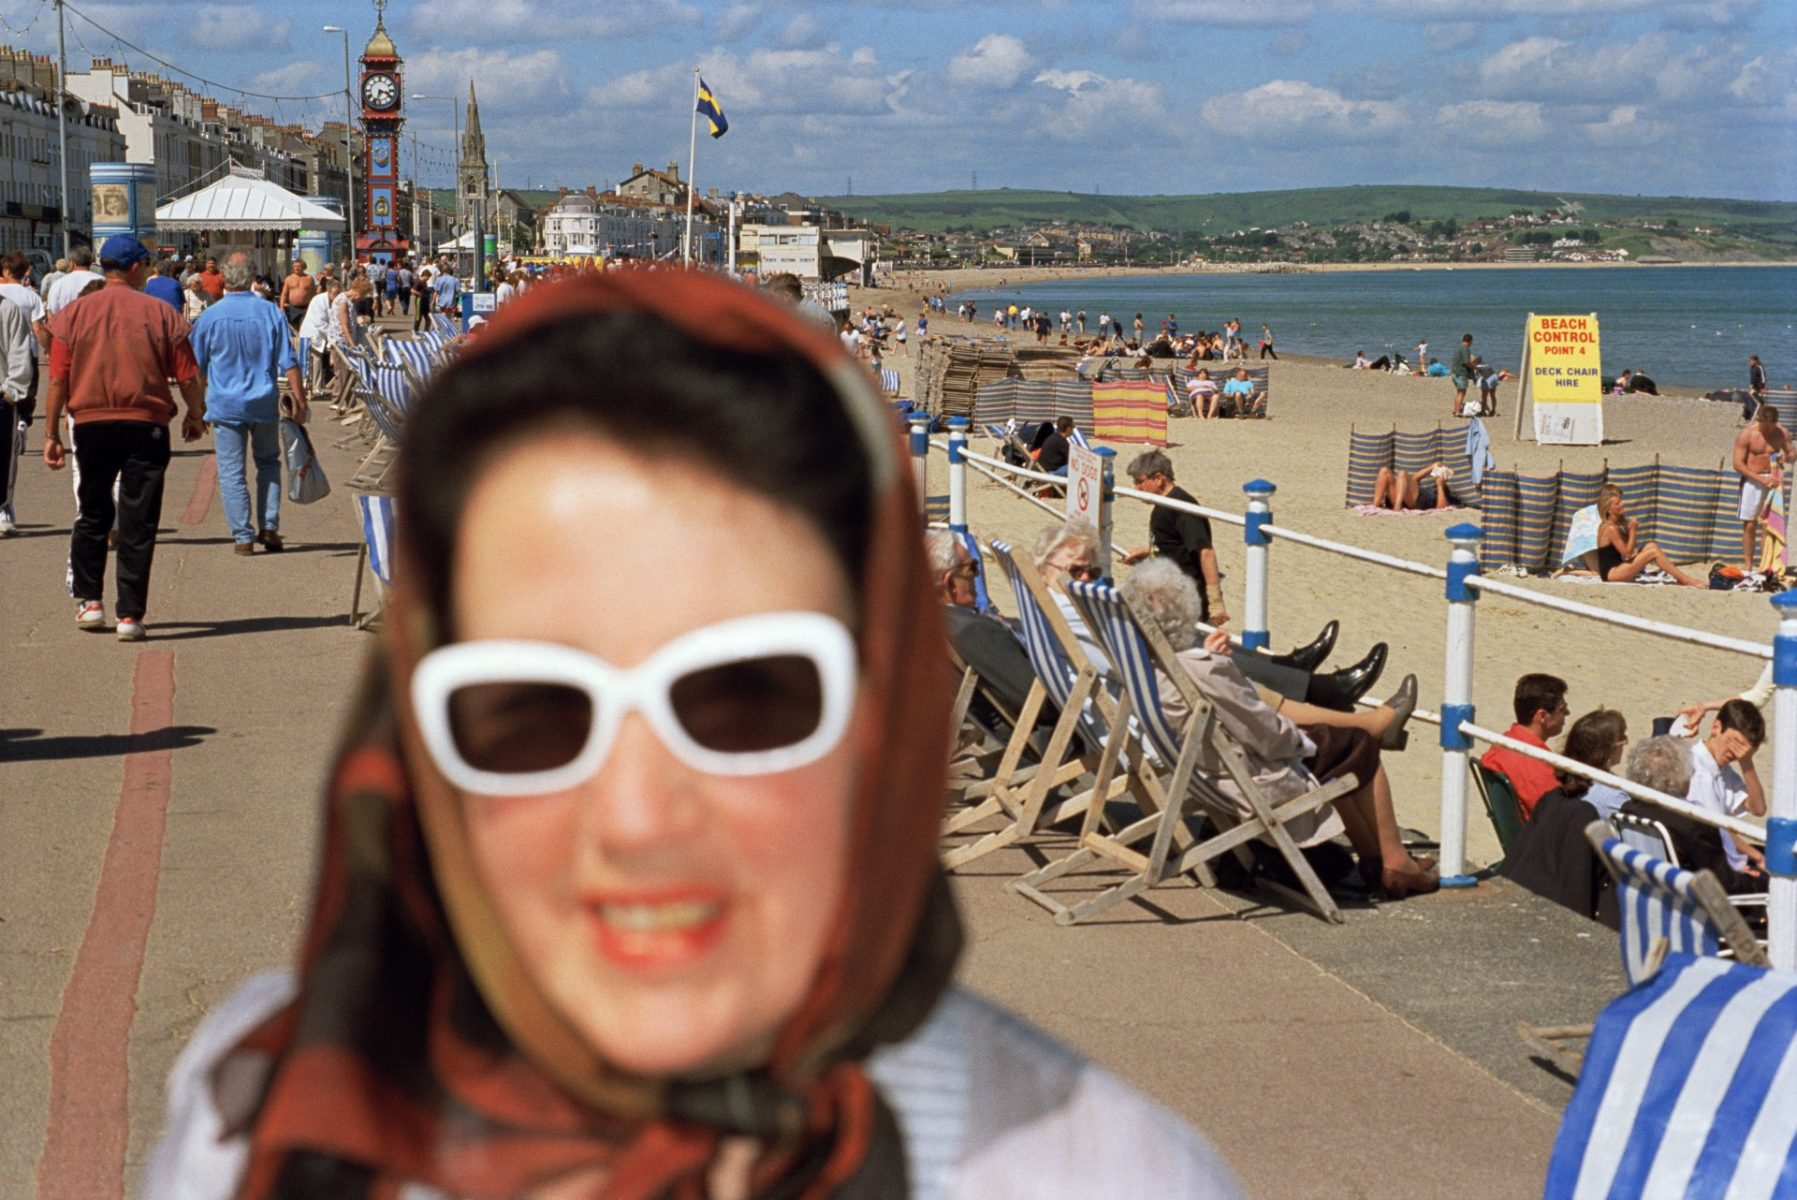 Color photo by Martin Parr, woman in sunglasses on promenade, with beach and tourists in the background. Weymouth England